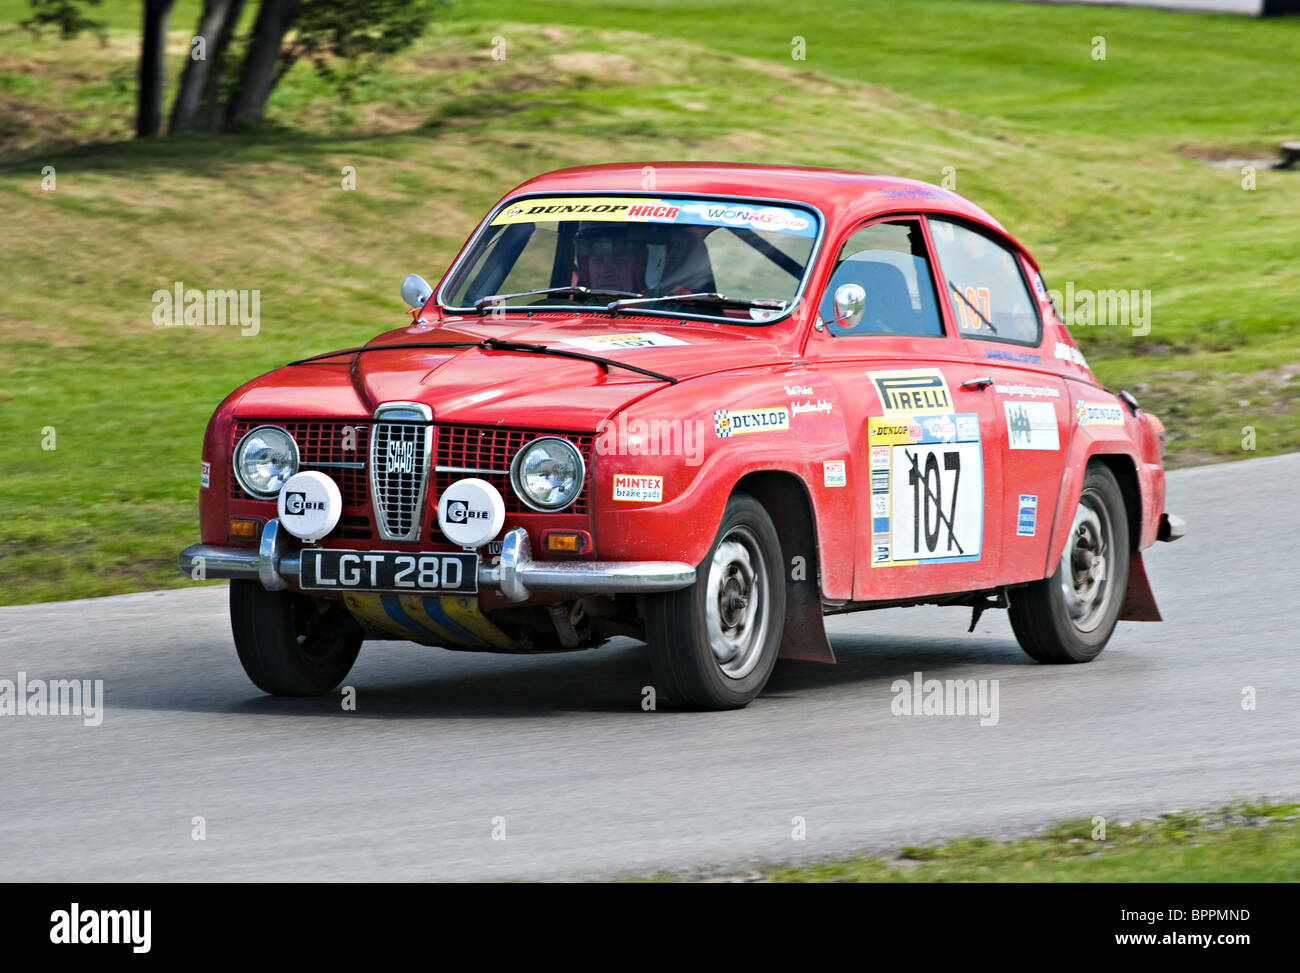 Saab 96 Rally Car on Rally Track at Oulton Park Motor Racing Circuit ...